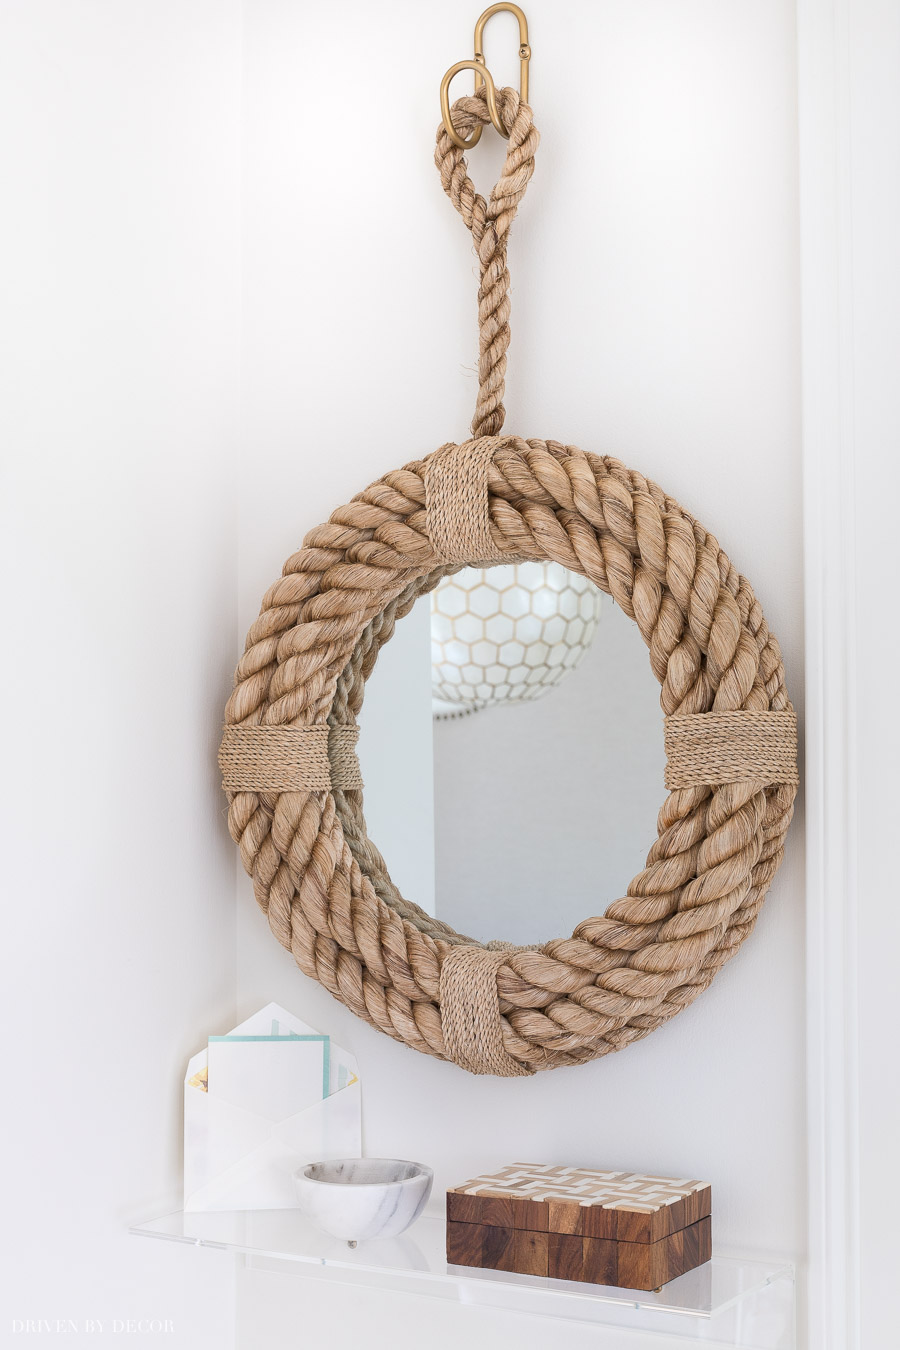 A rope mirror and small acrylic shelf - super cute decor for a small entryway